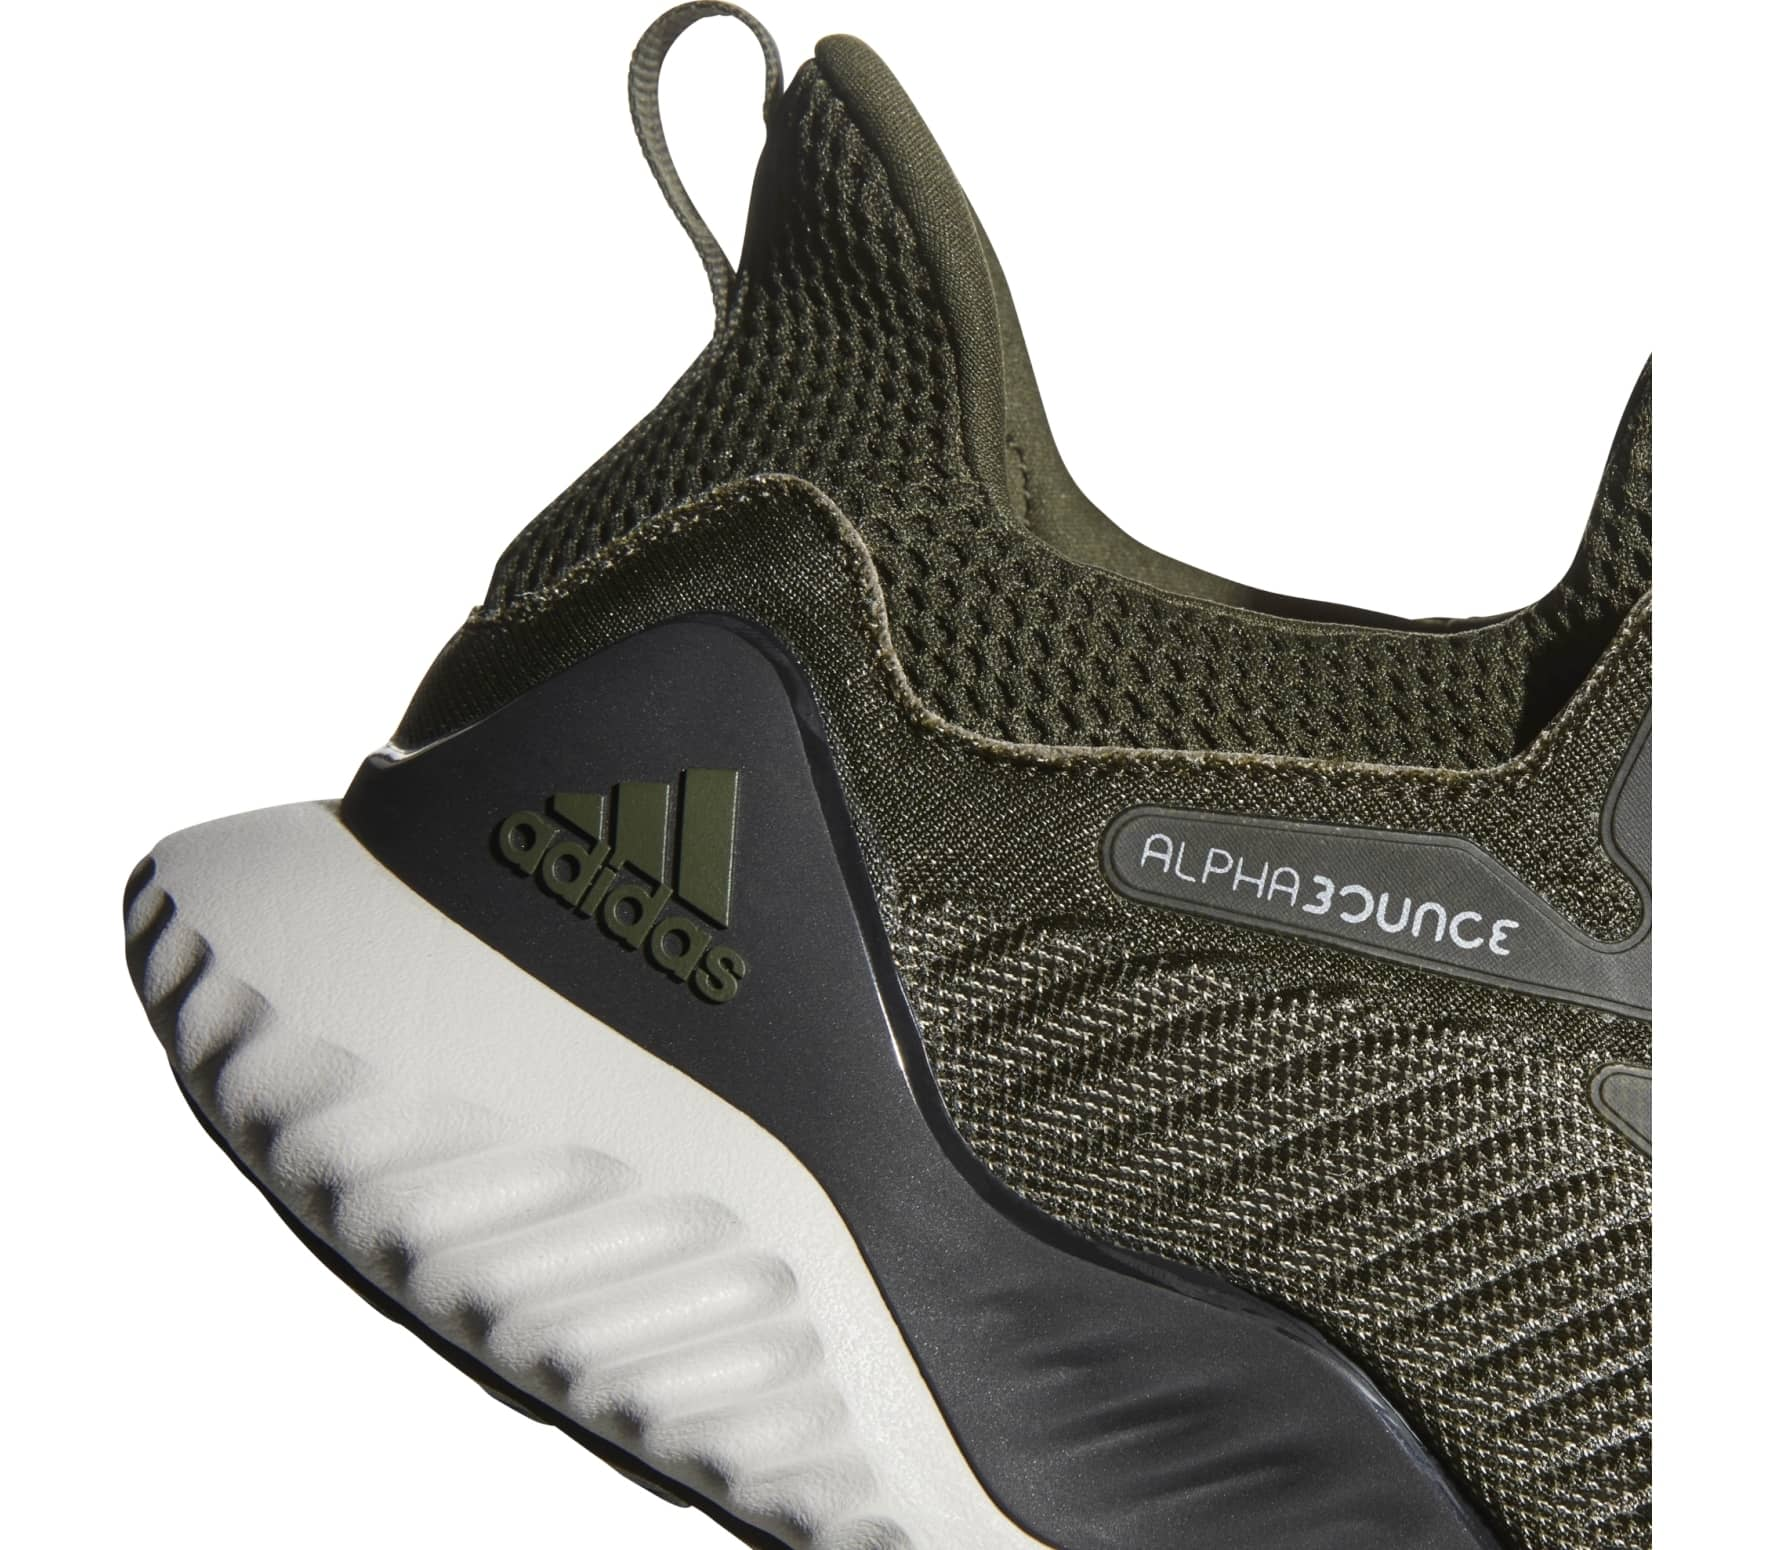 f2c6450950473 Adidas - Alphabounce Beyond men s running shoes (dark green) - buy ...